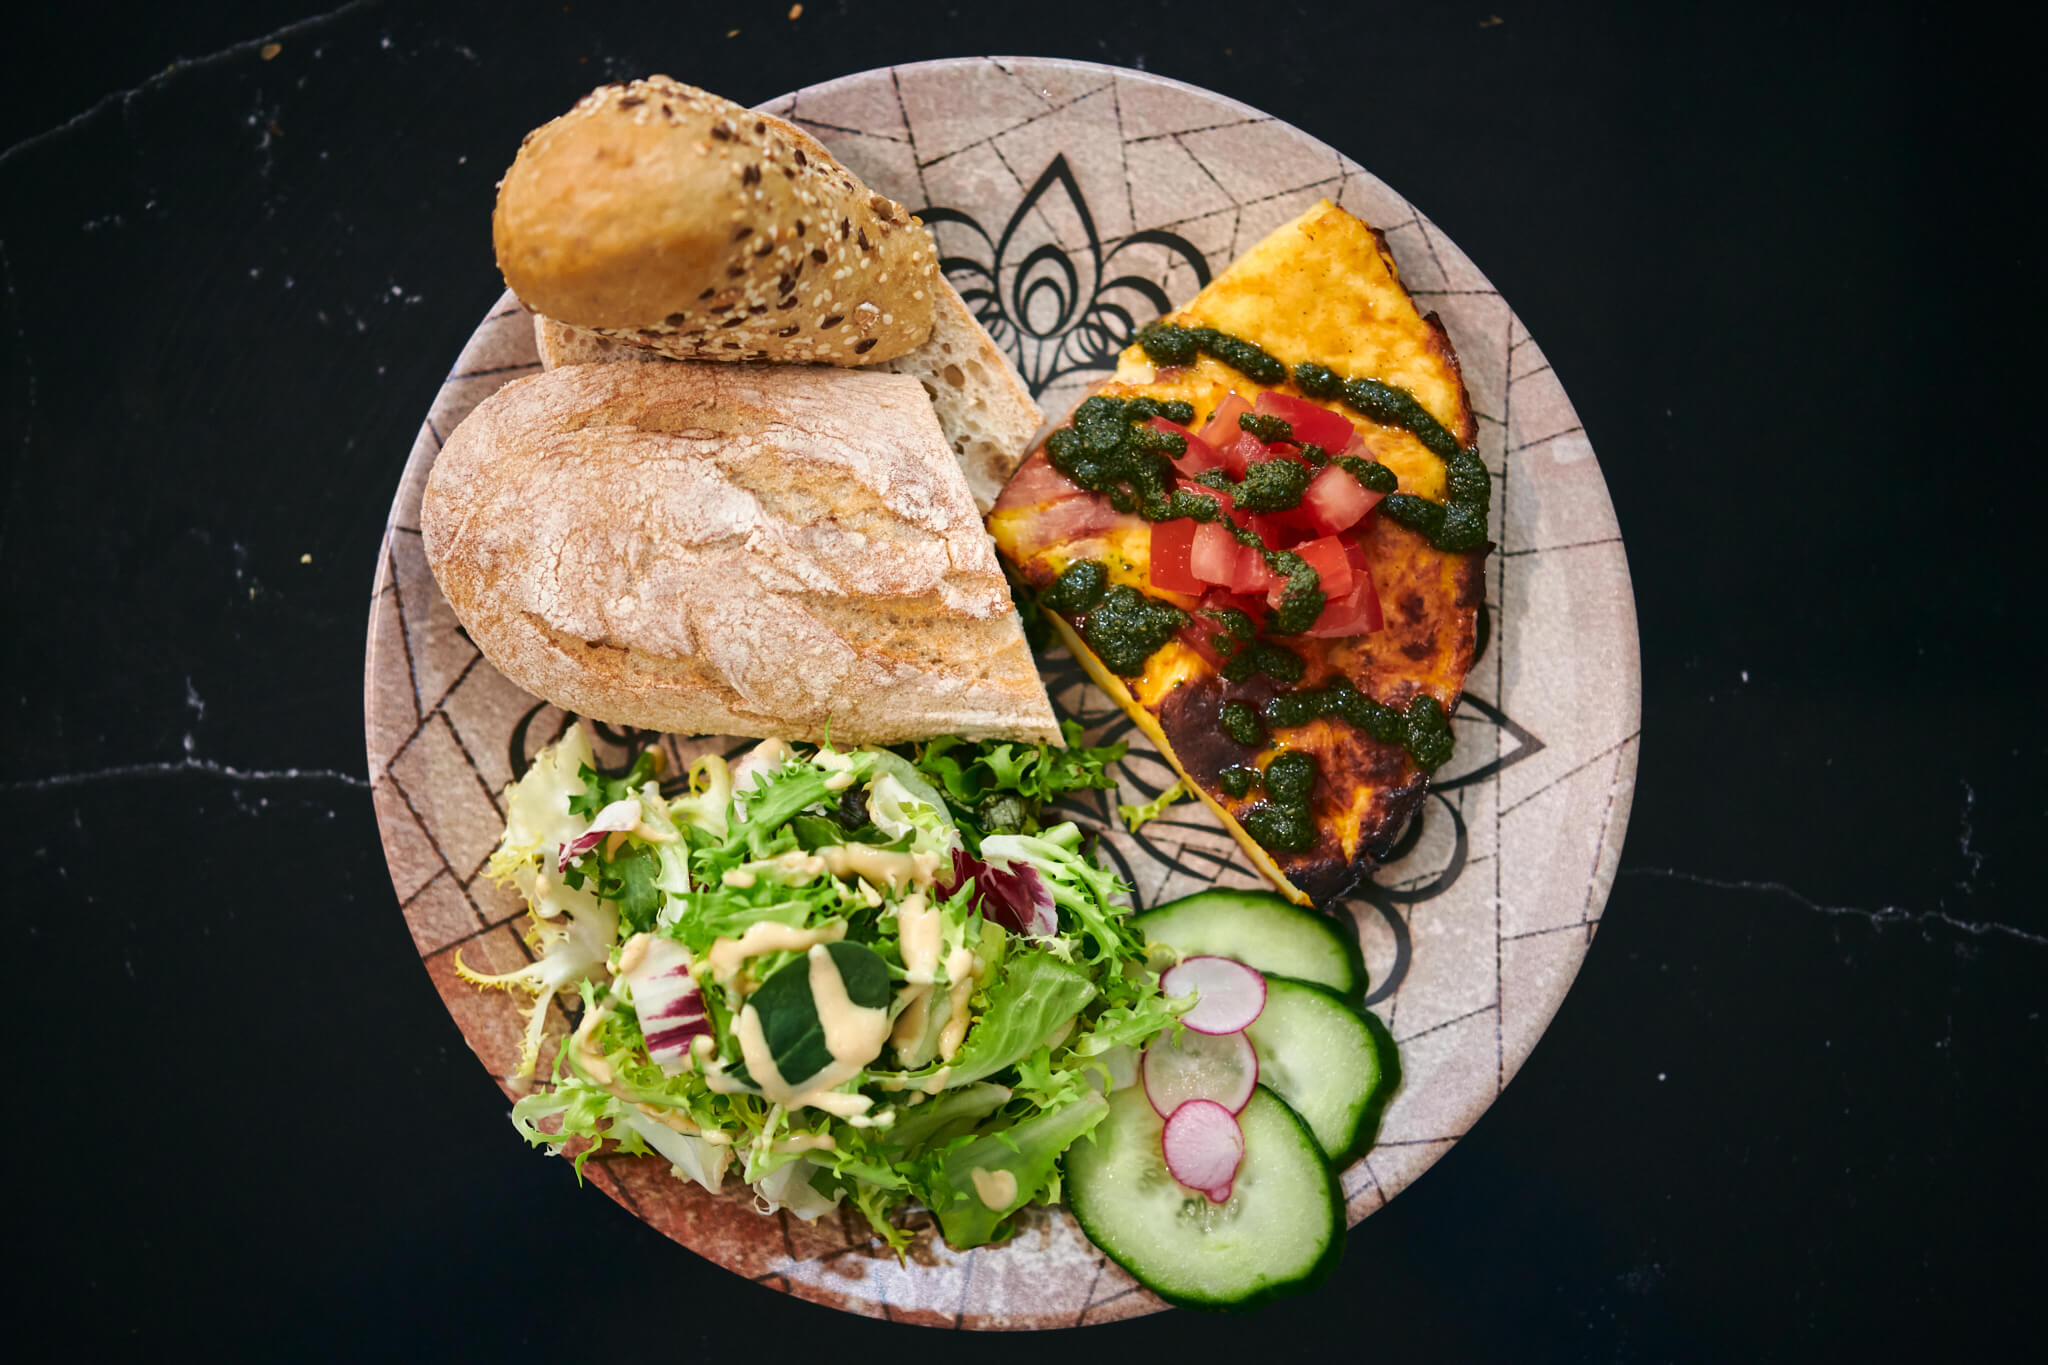 A plate with frittata bread and greens (shot from above)